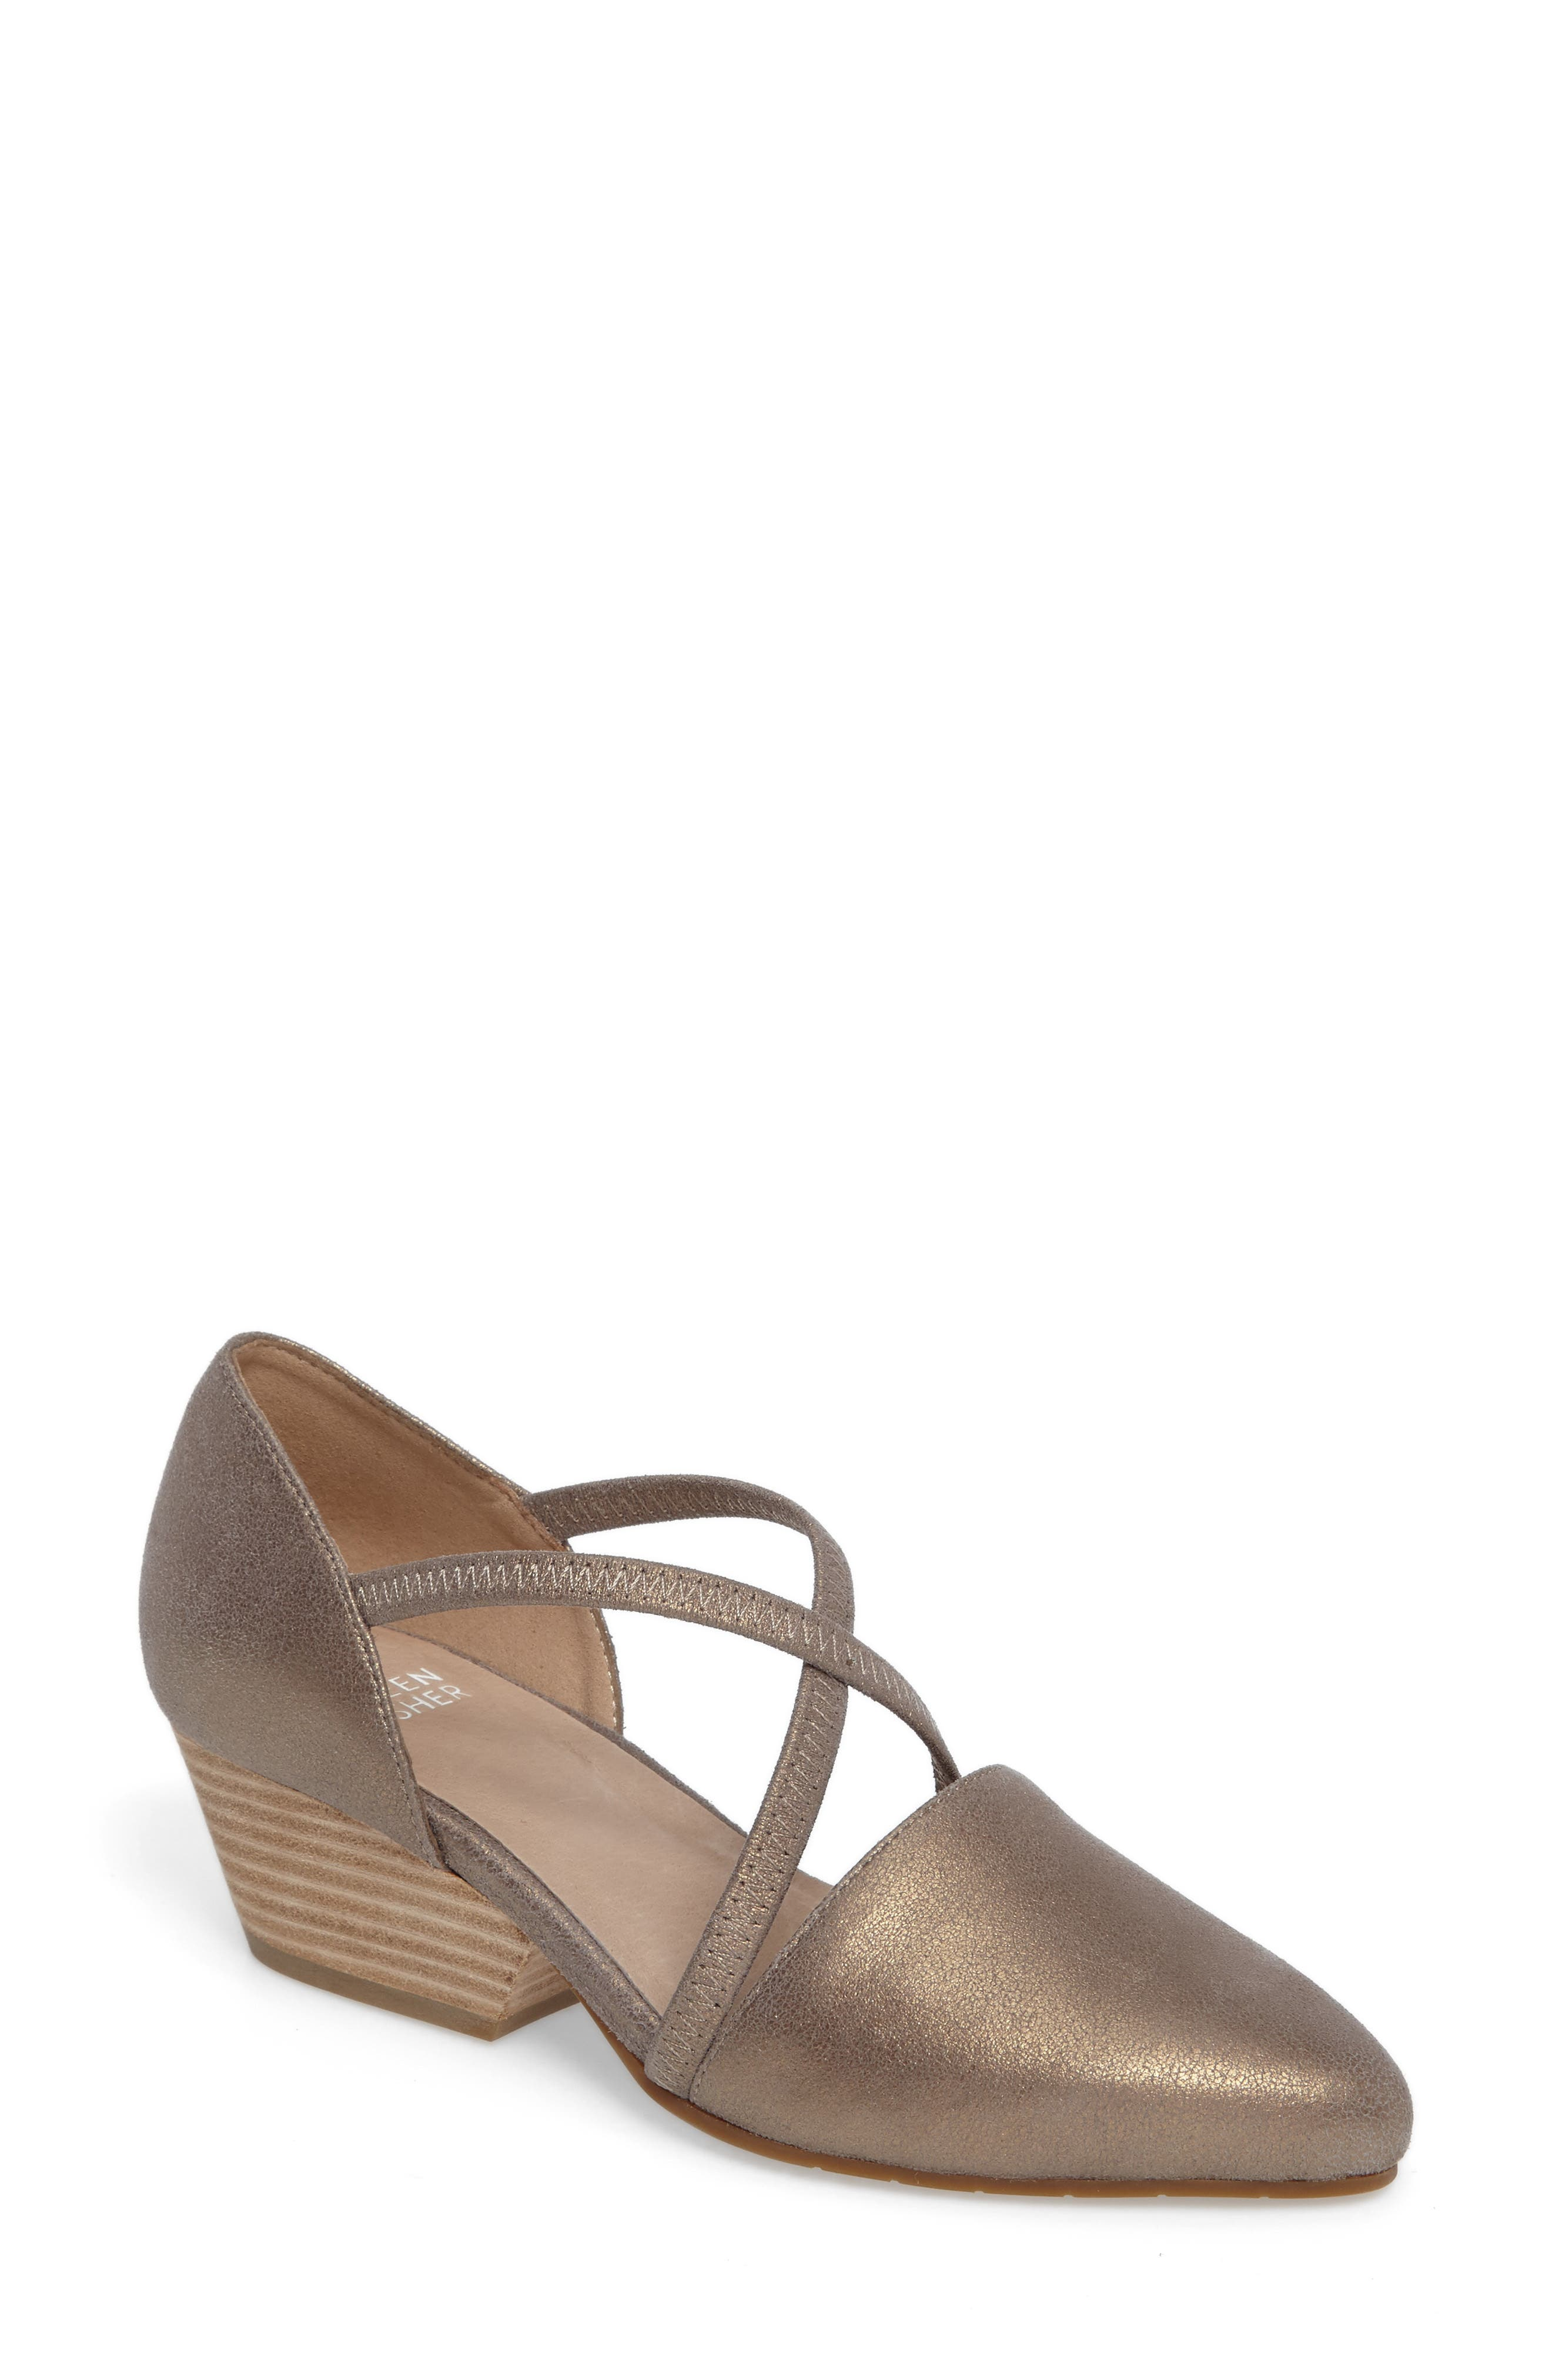 Main Image - Eileen Fisher Poet Crisscross Pump (Women)